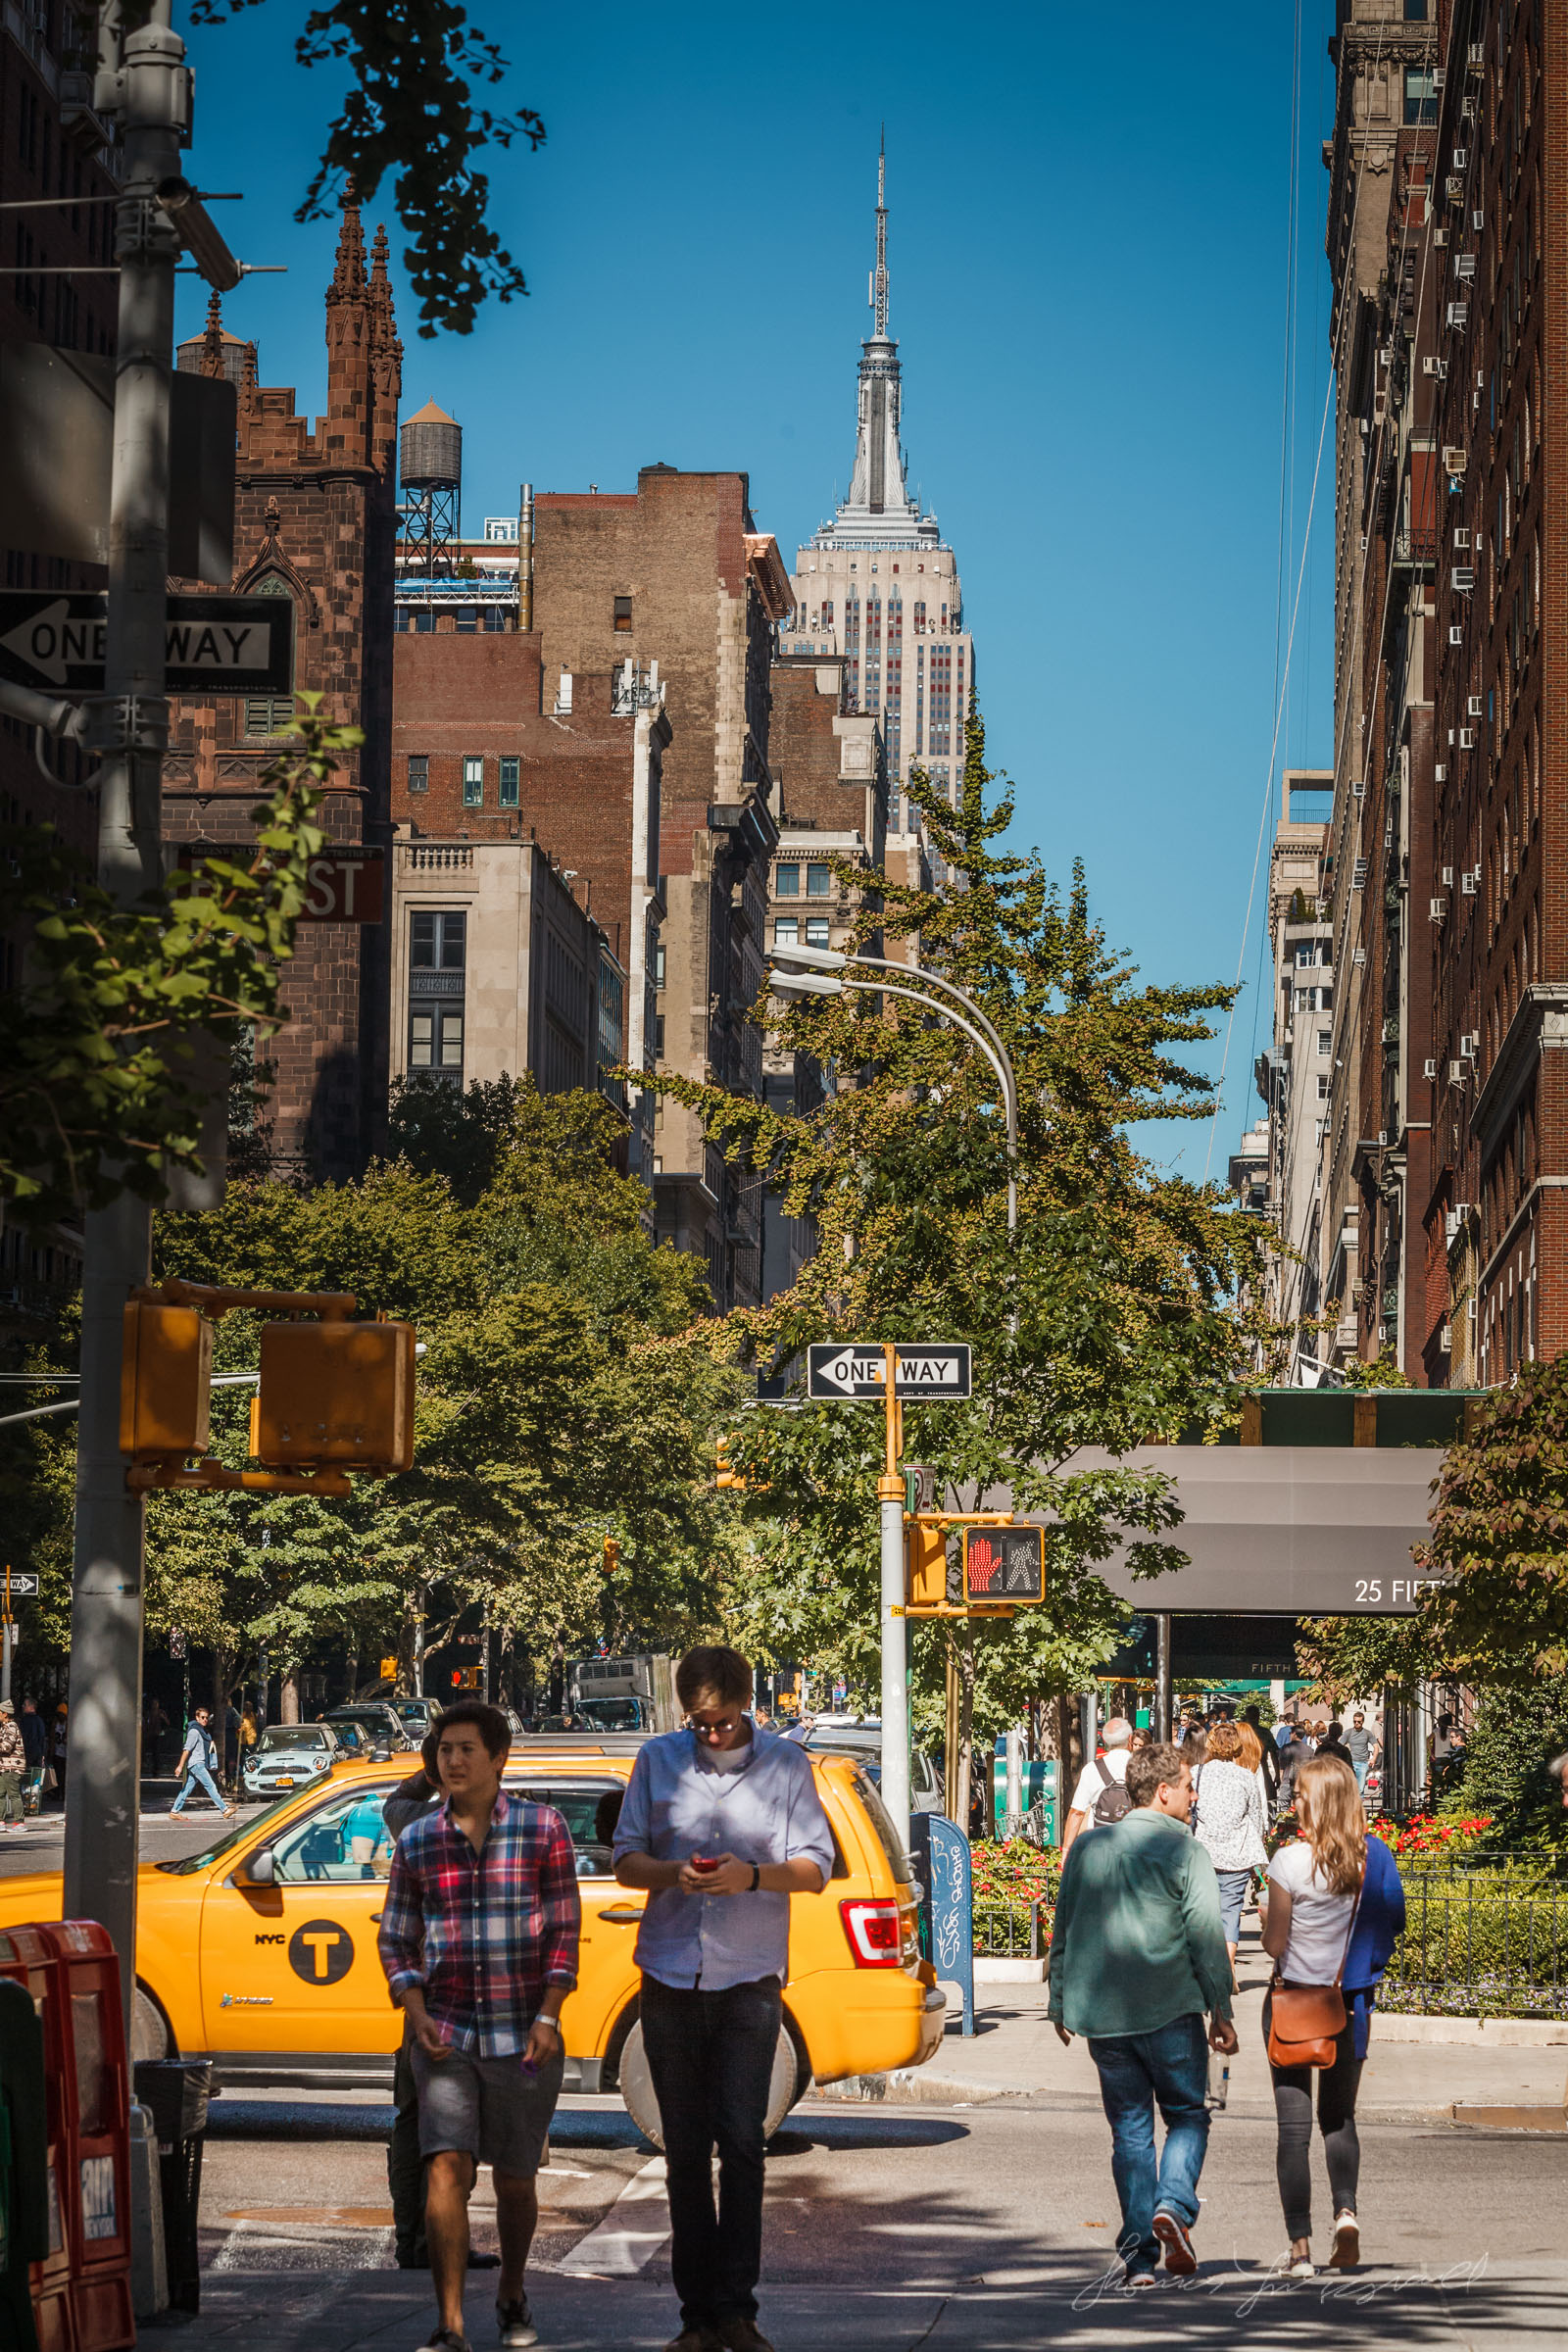 A Sunny day on 5th Avenue, New York City